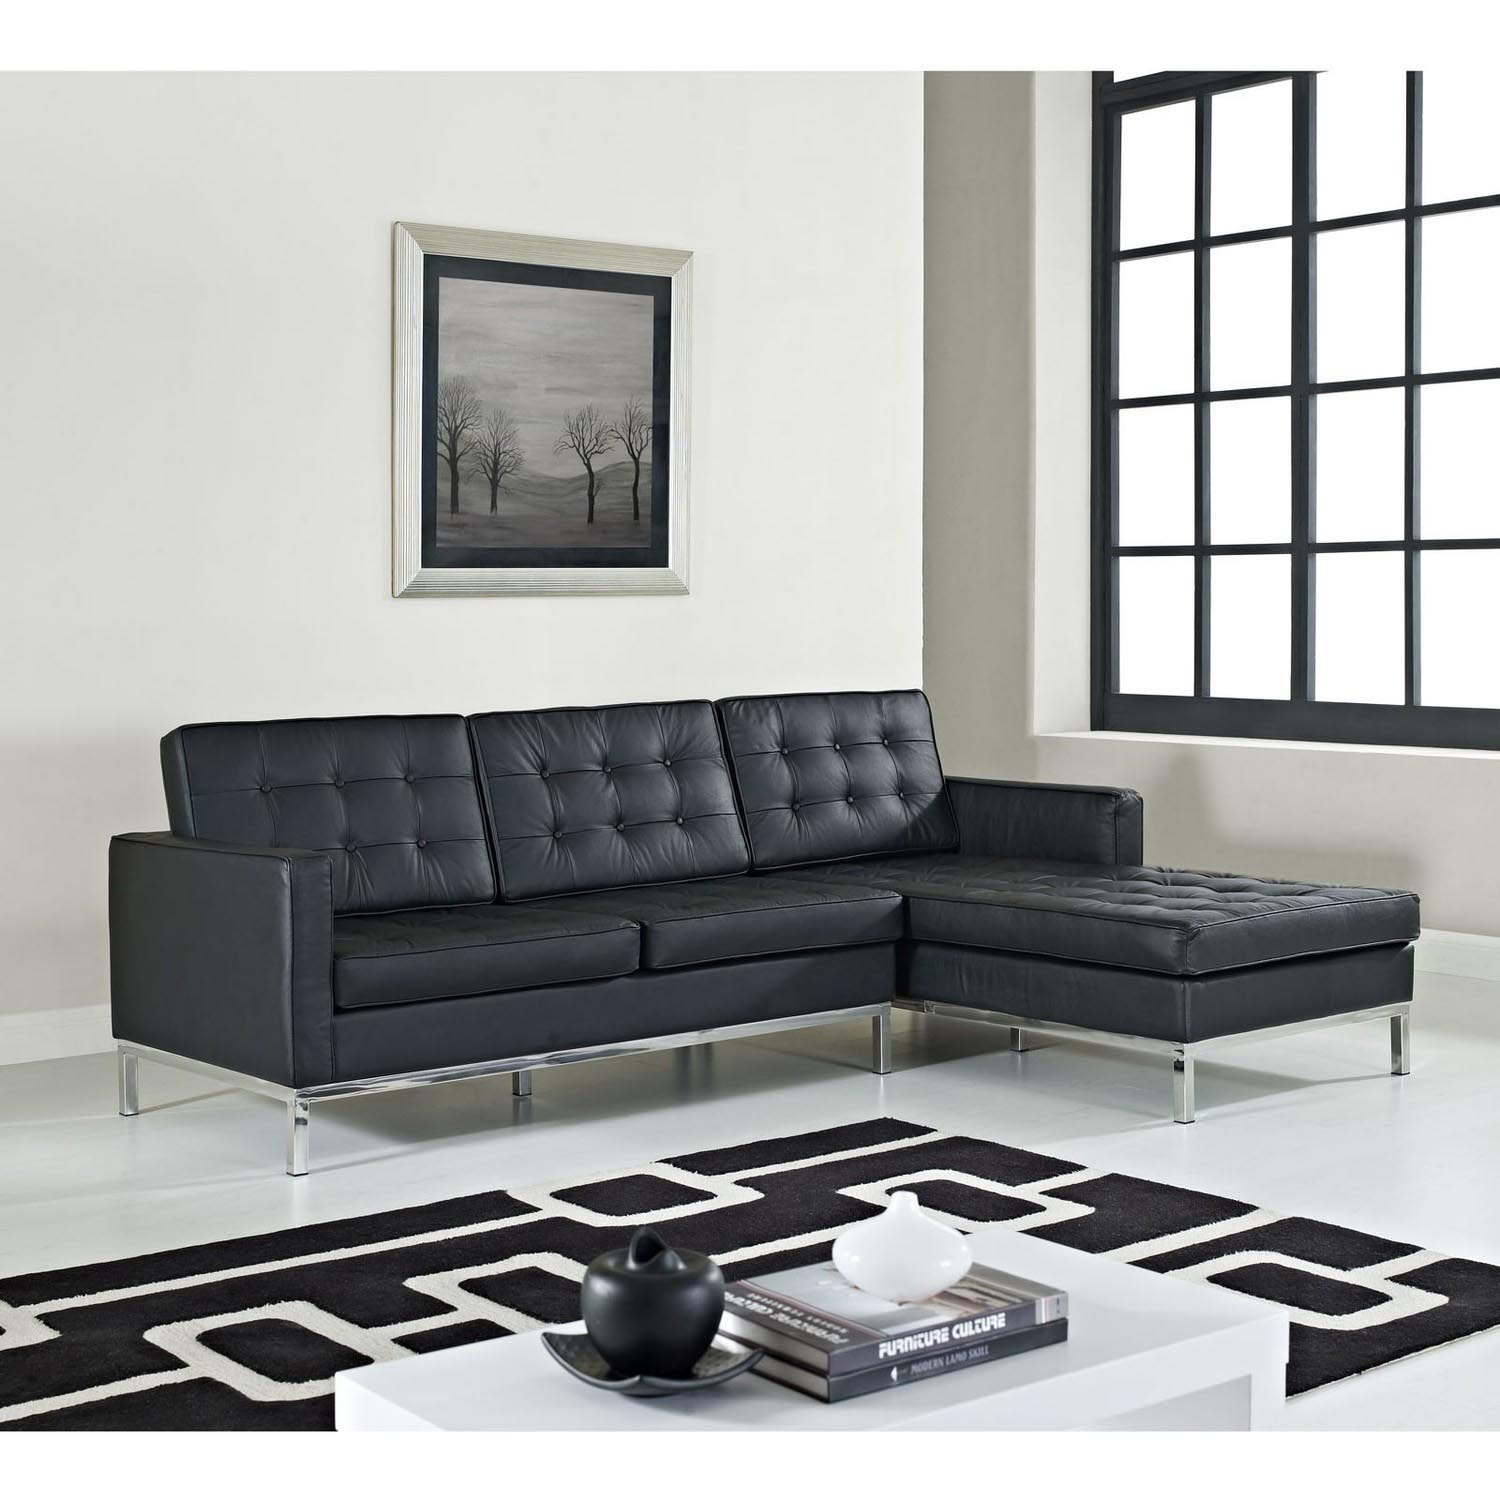 Modway Loft Right Arm Leather Sectional Sofa Black MW EEI 252